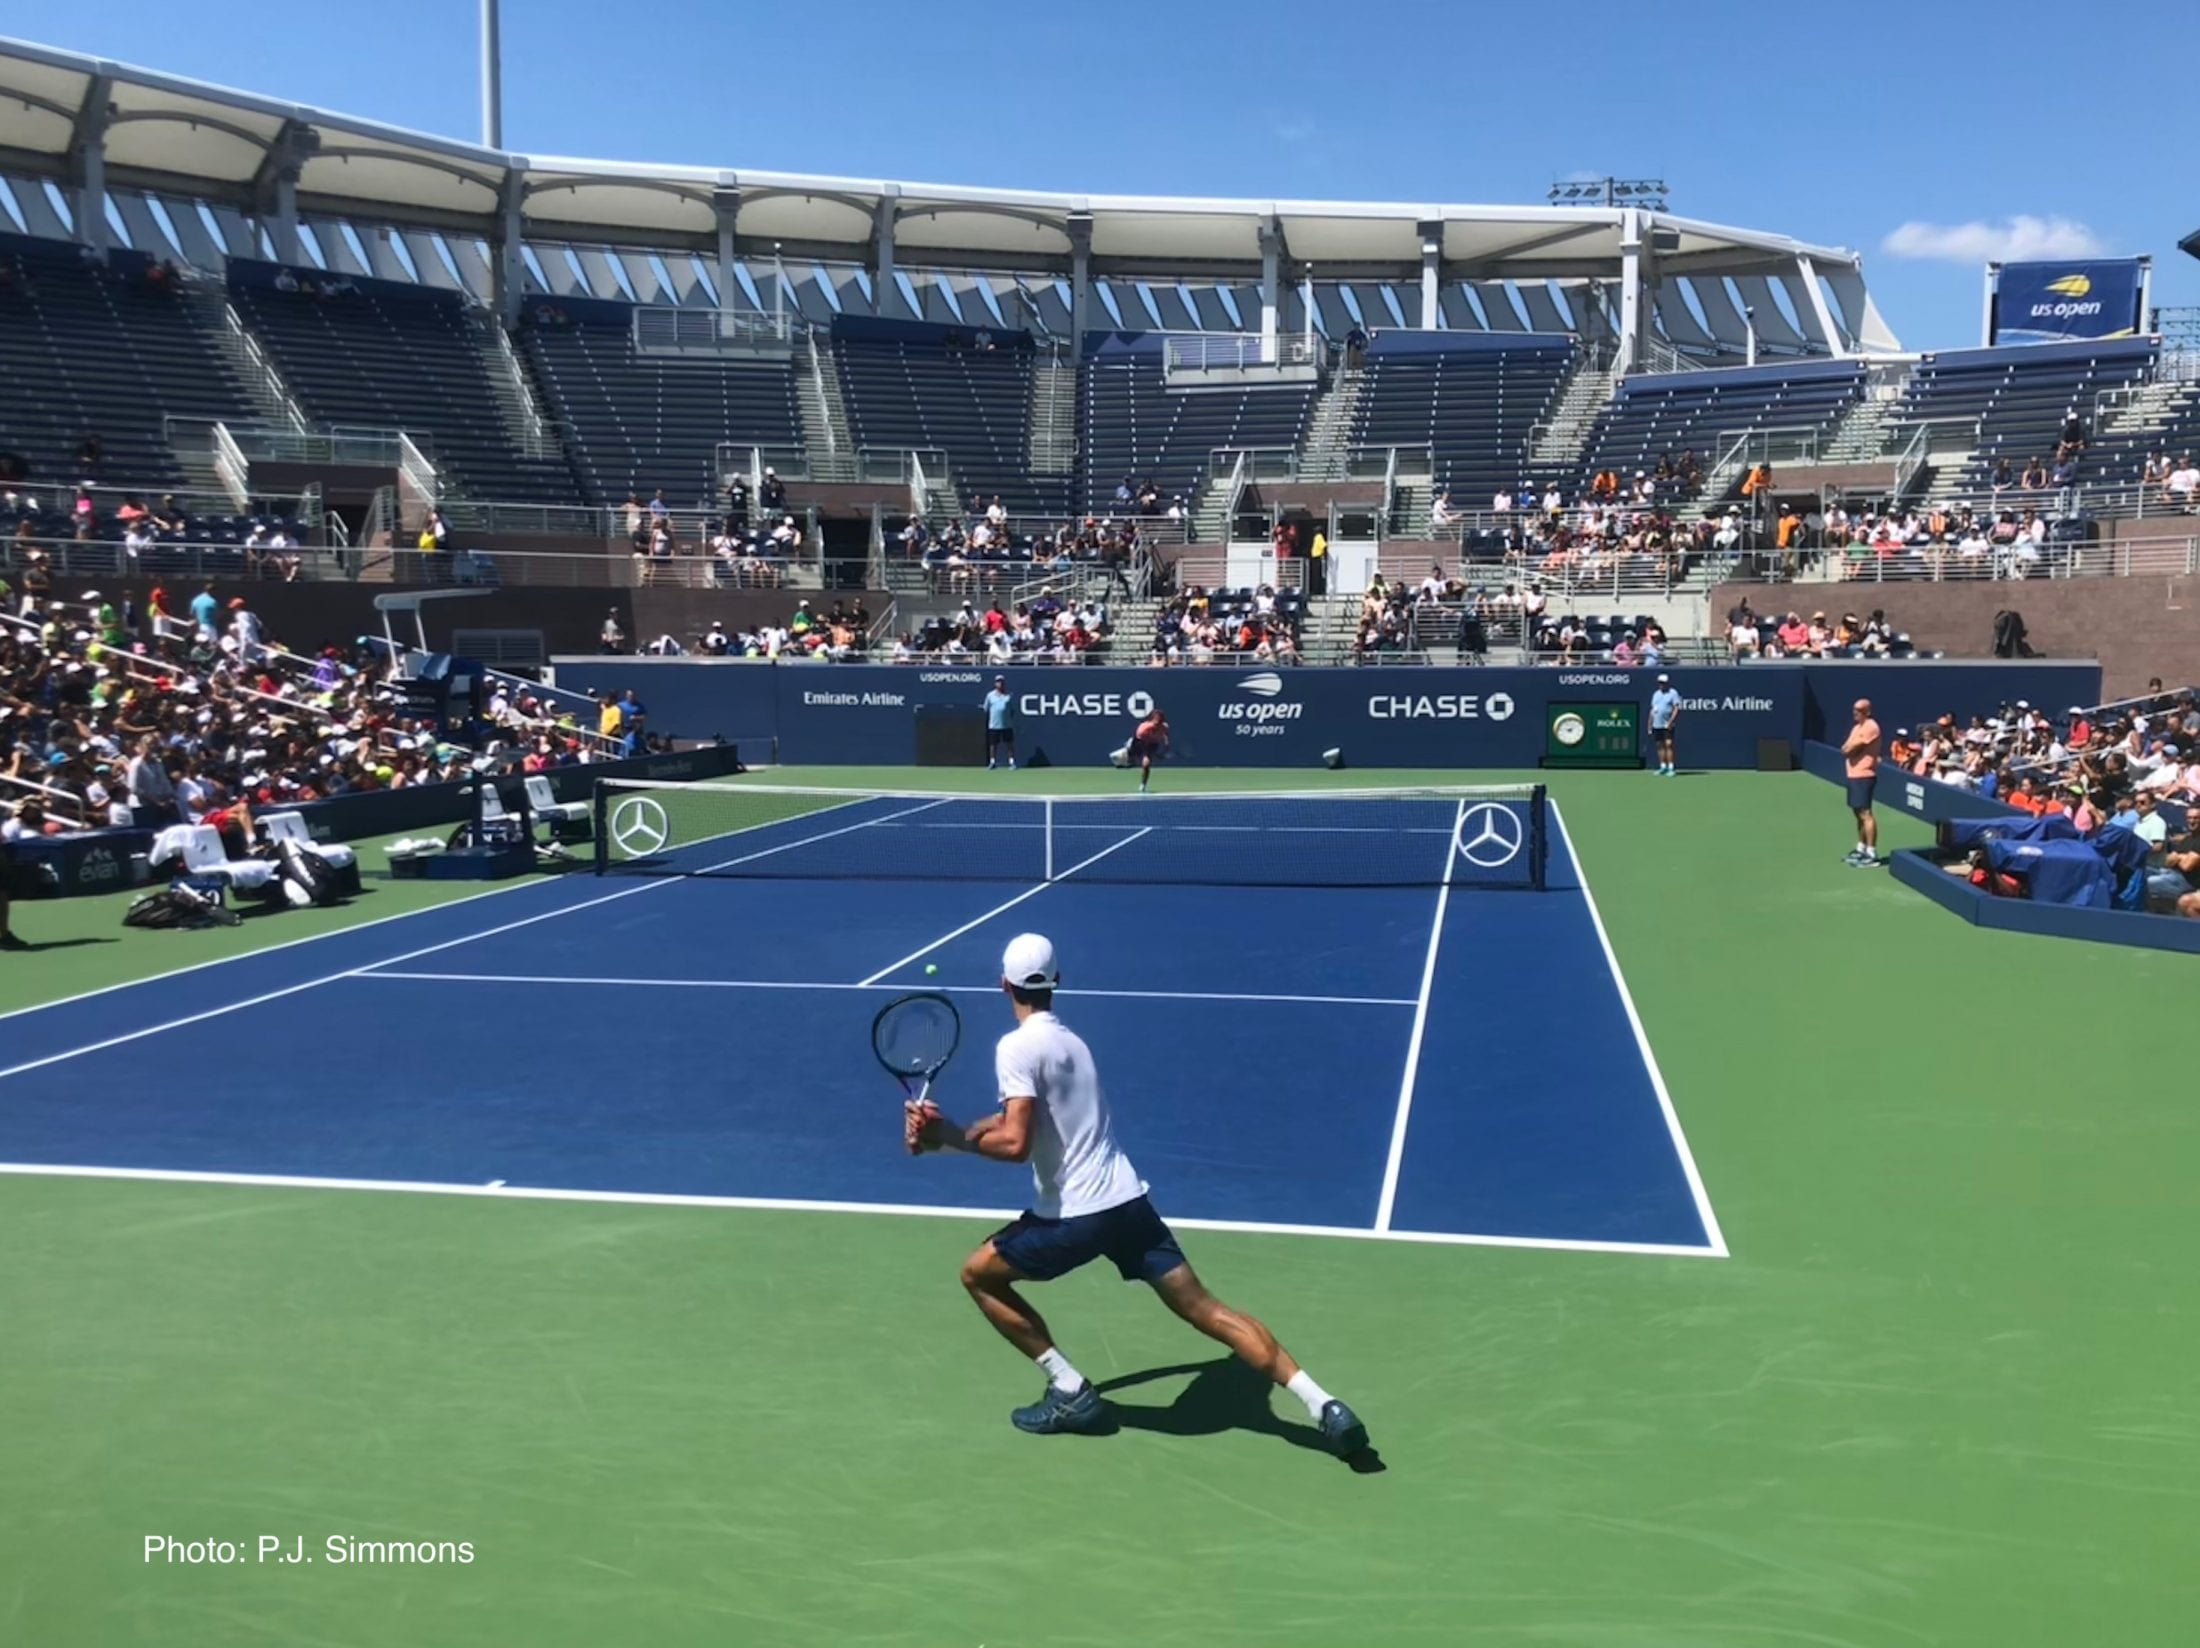 A Serious Tennis Fans Top 10 Tips For The 2019 Us Open Tickets - Us-open-tennis-center-map